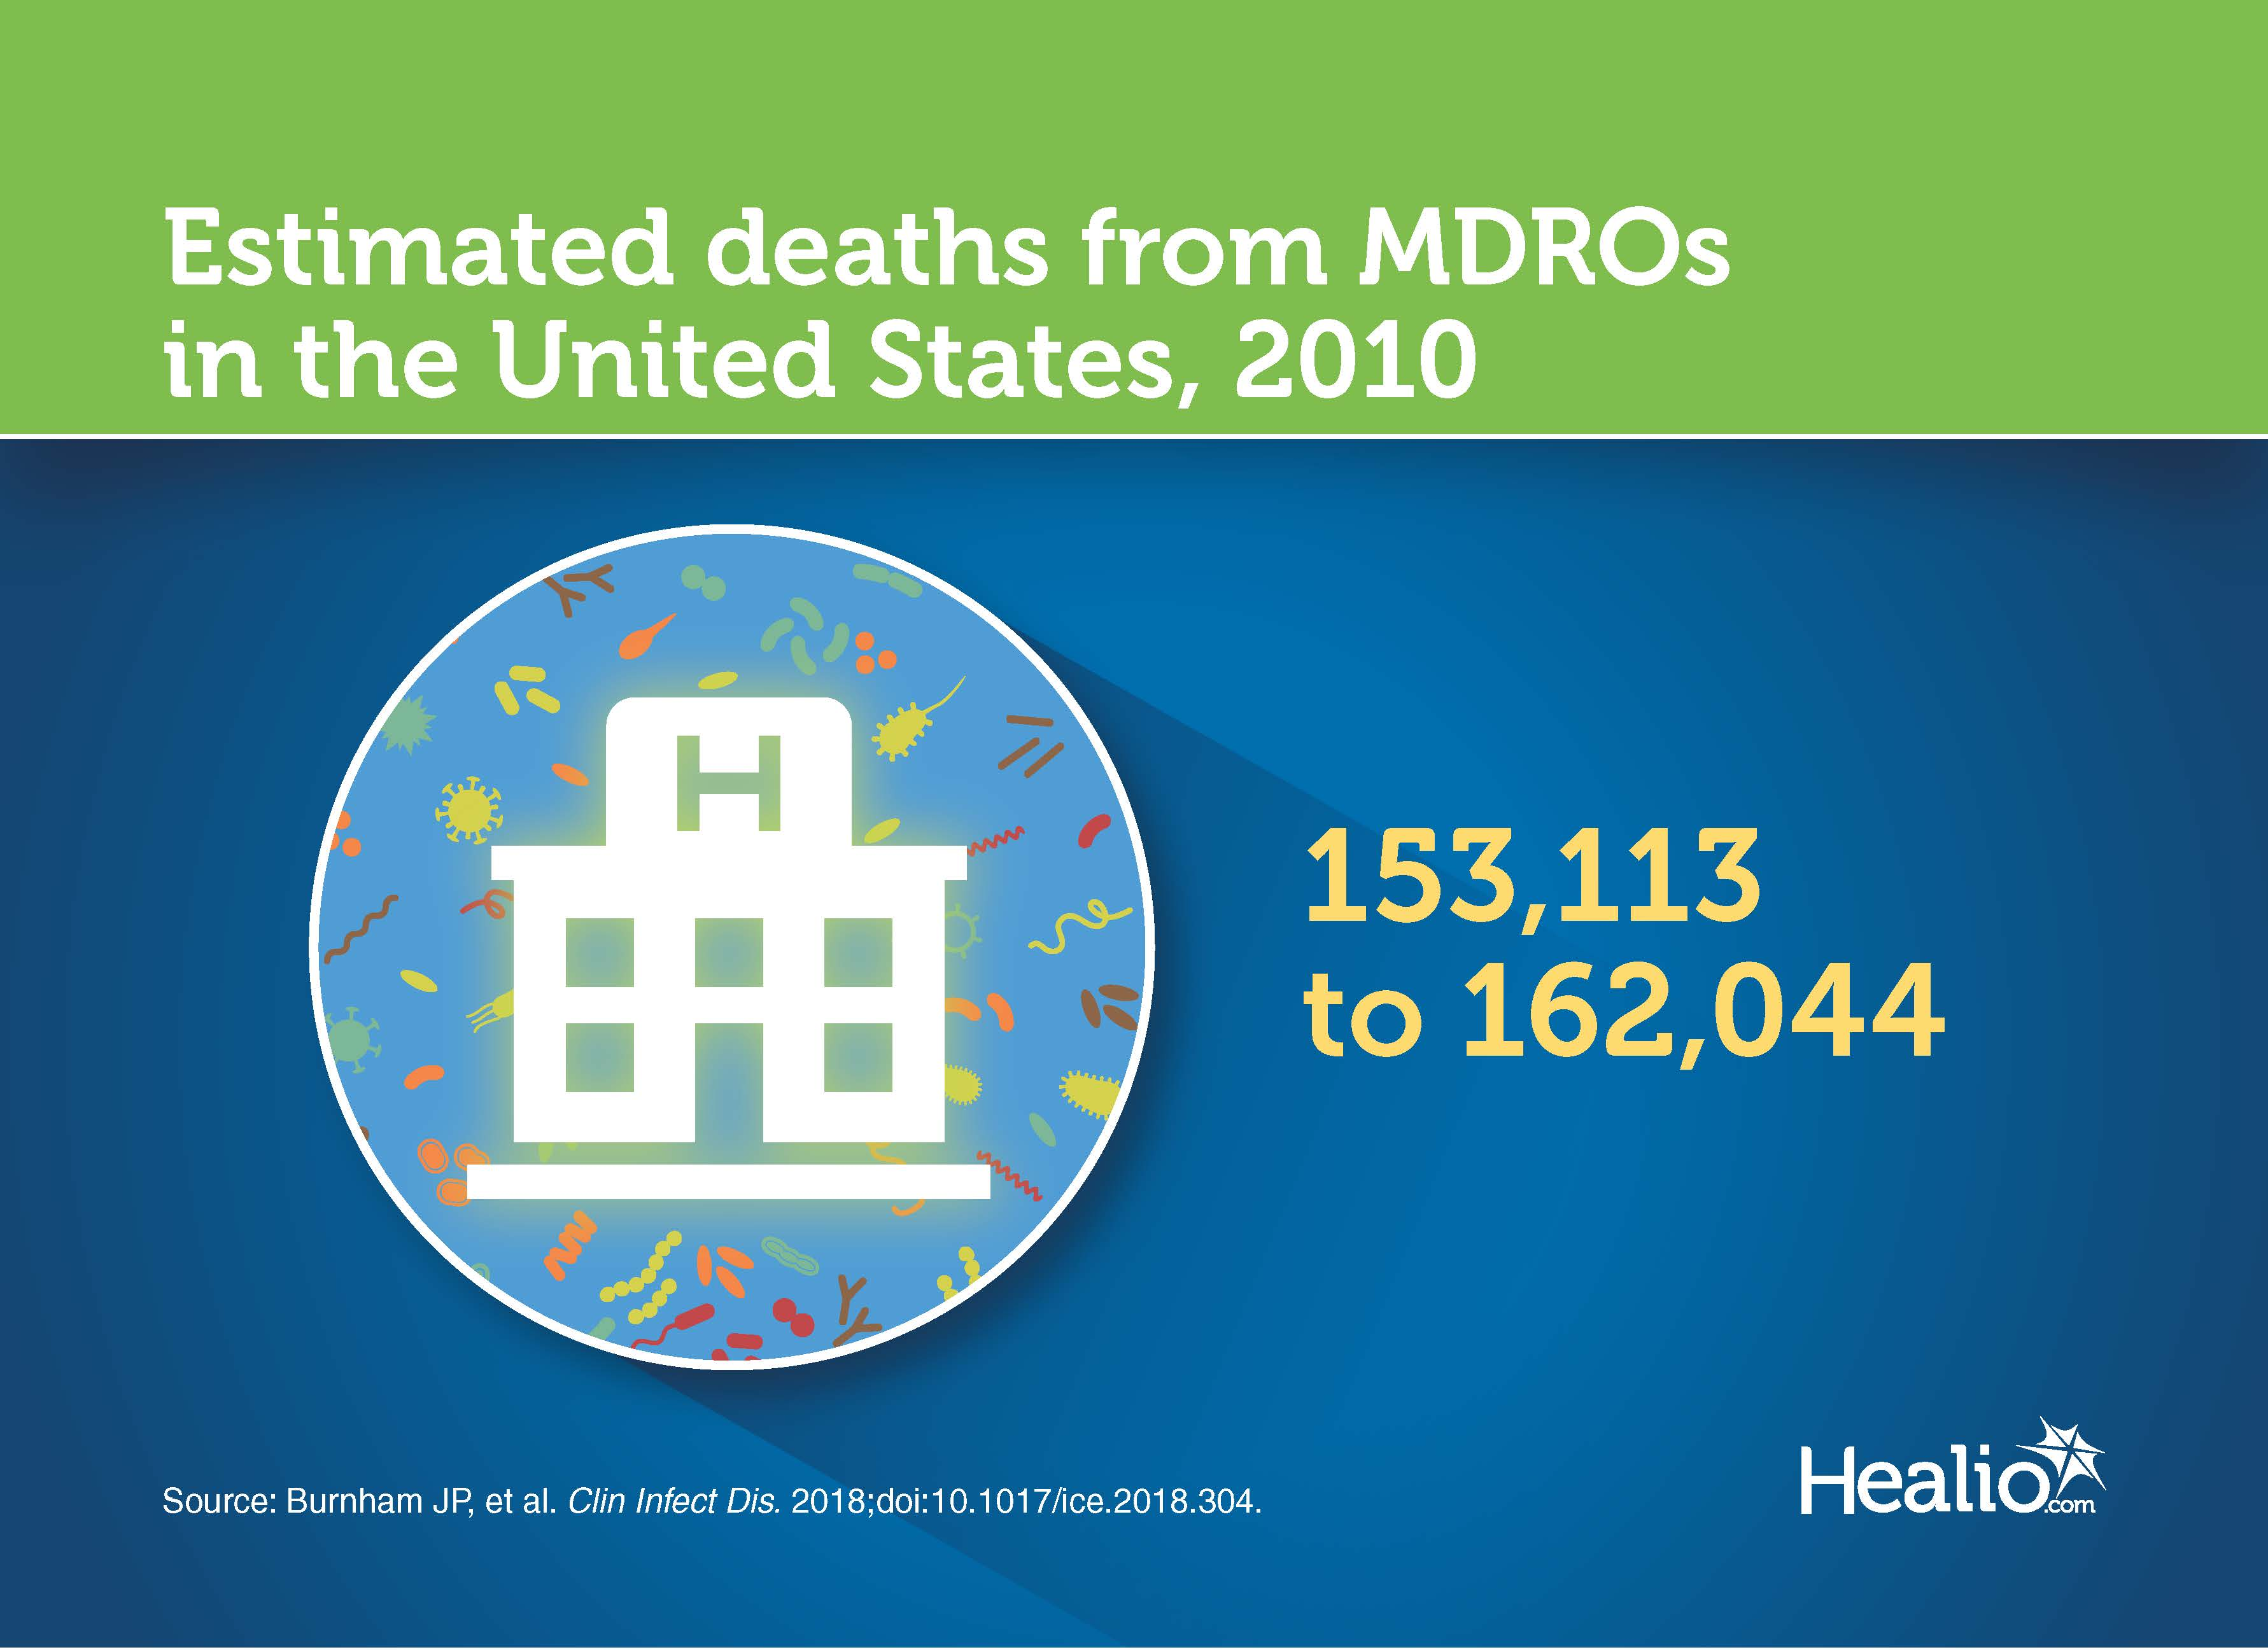 Estimated deaths from MDROs in the US